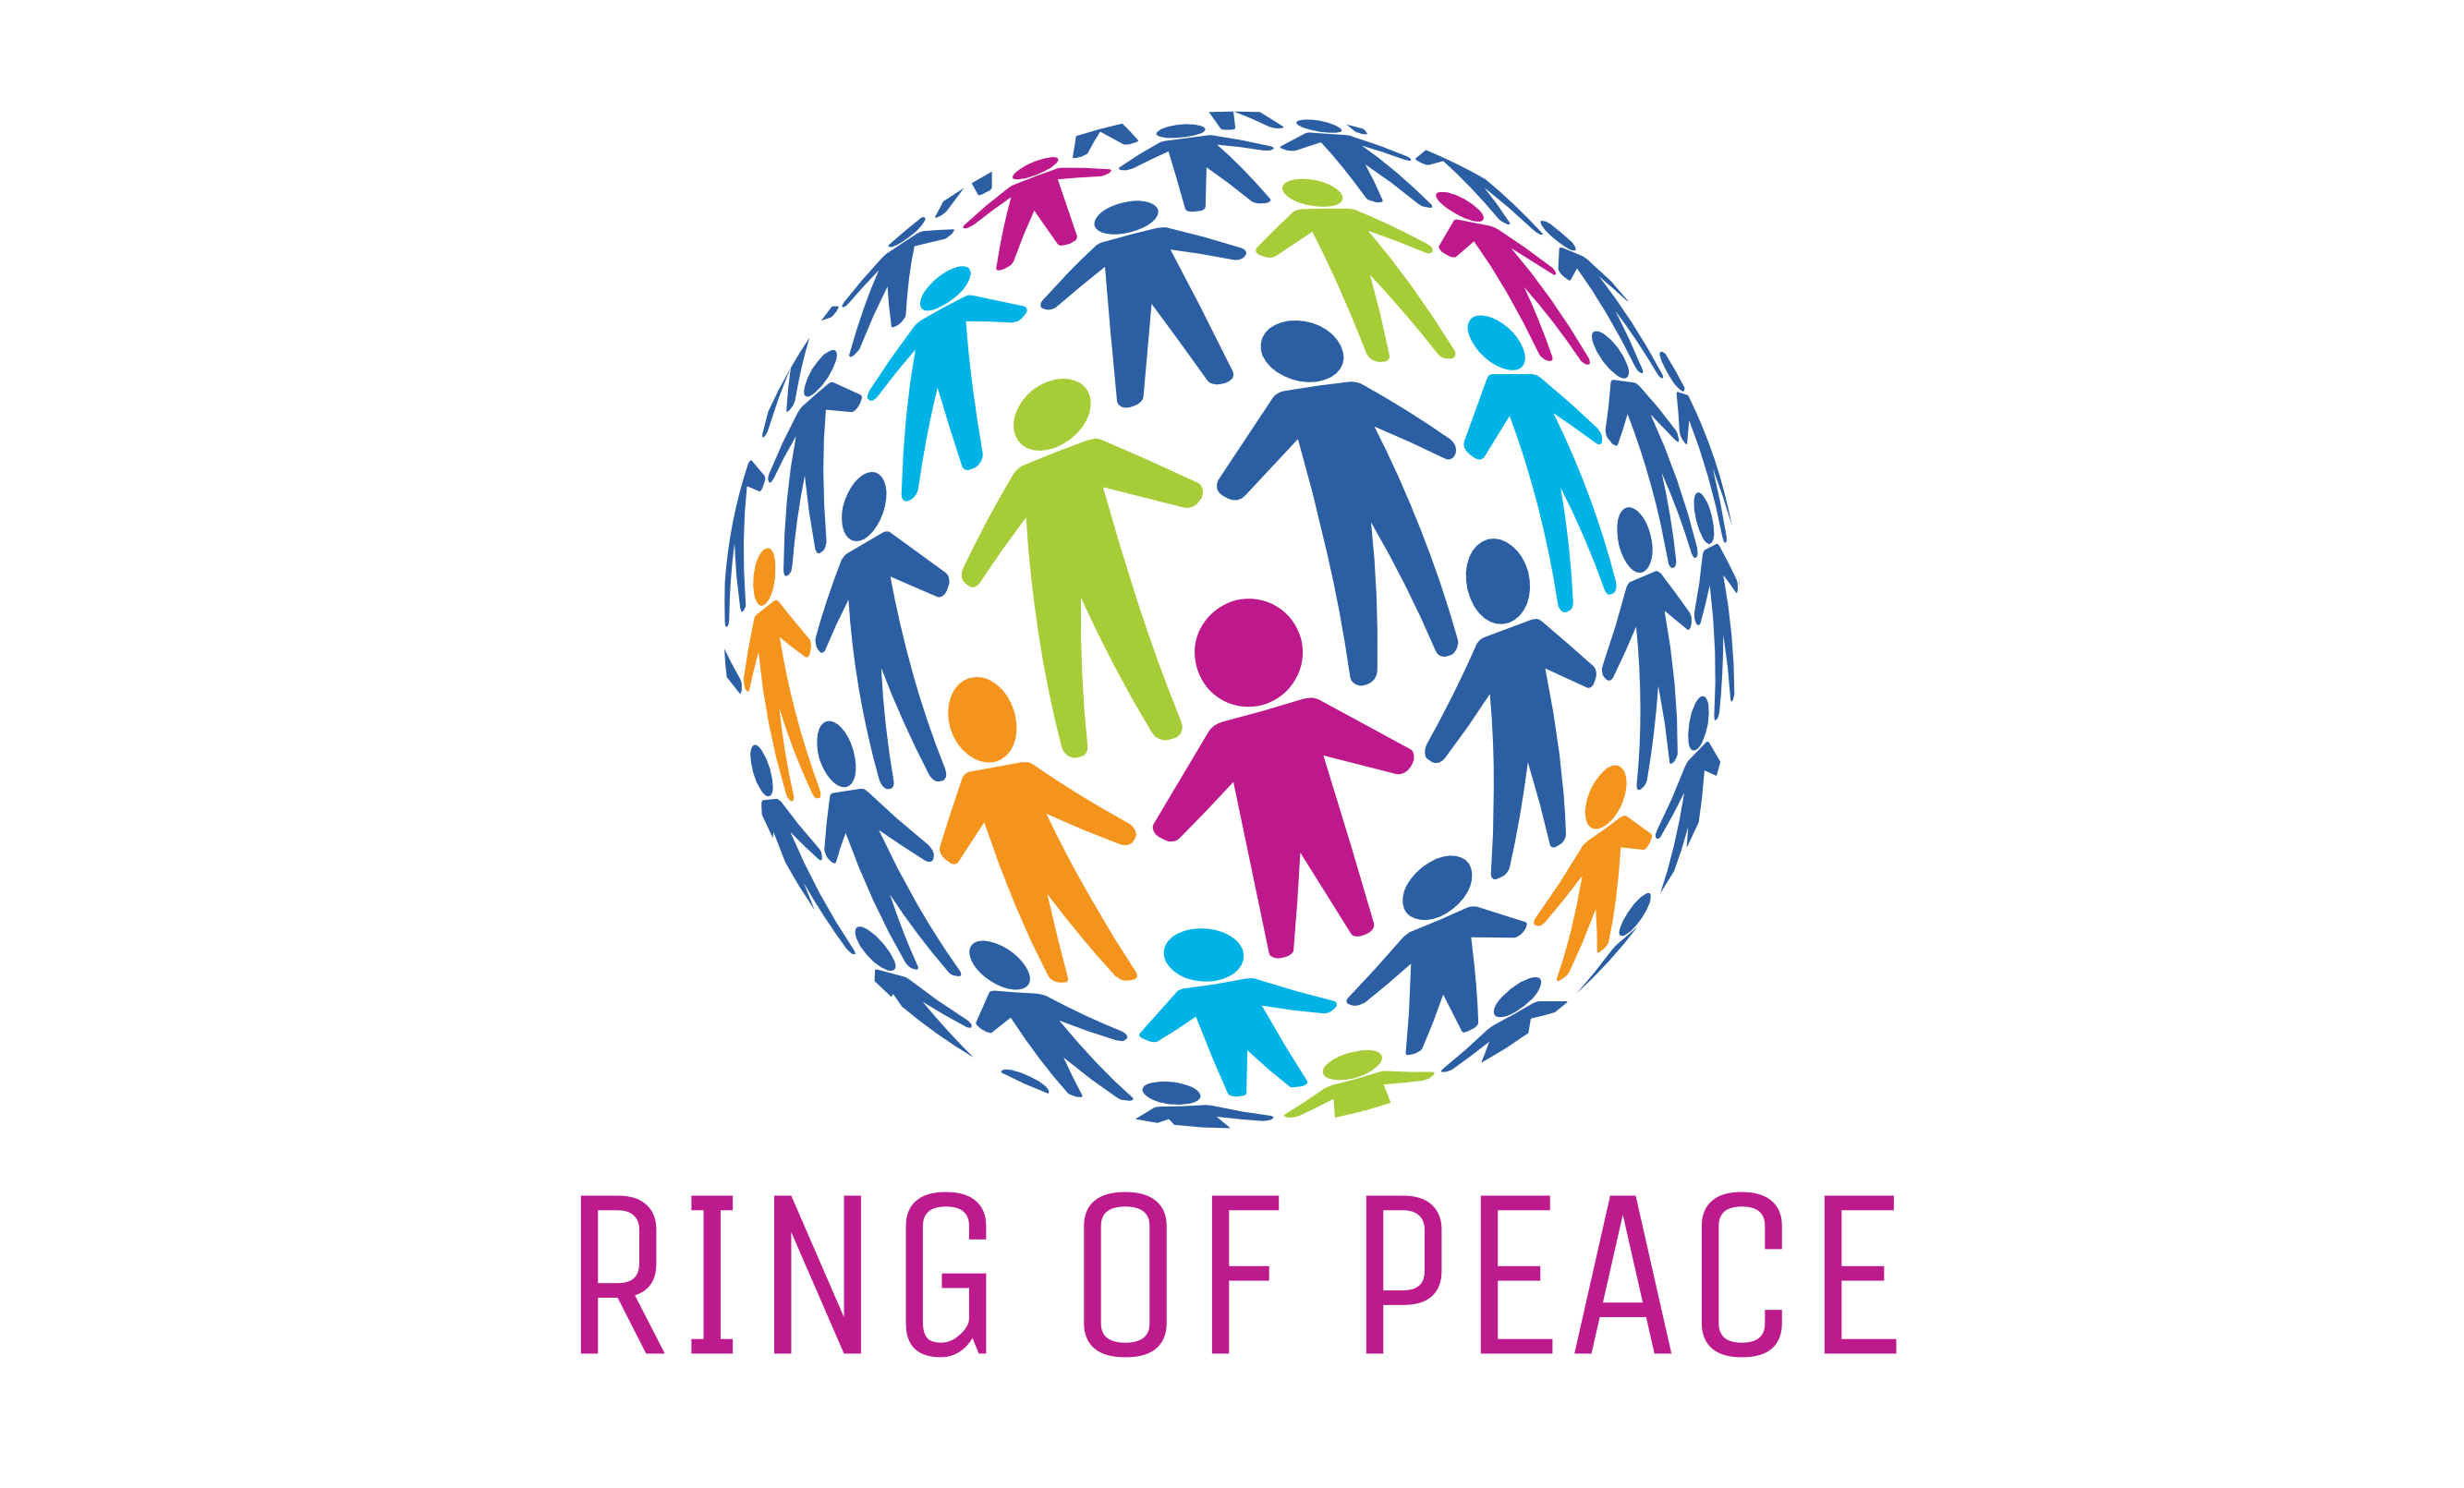 The Ring of Peace